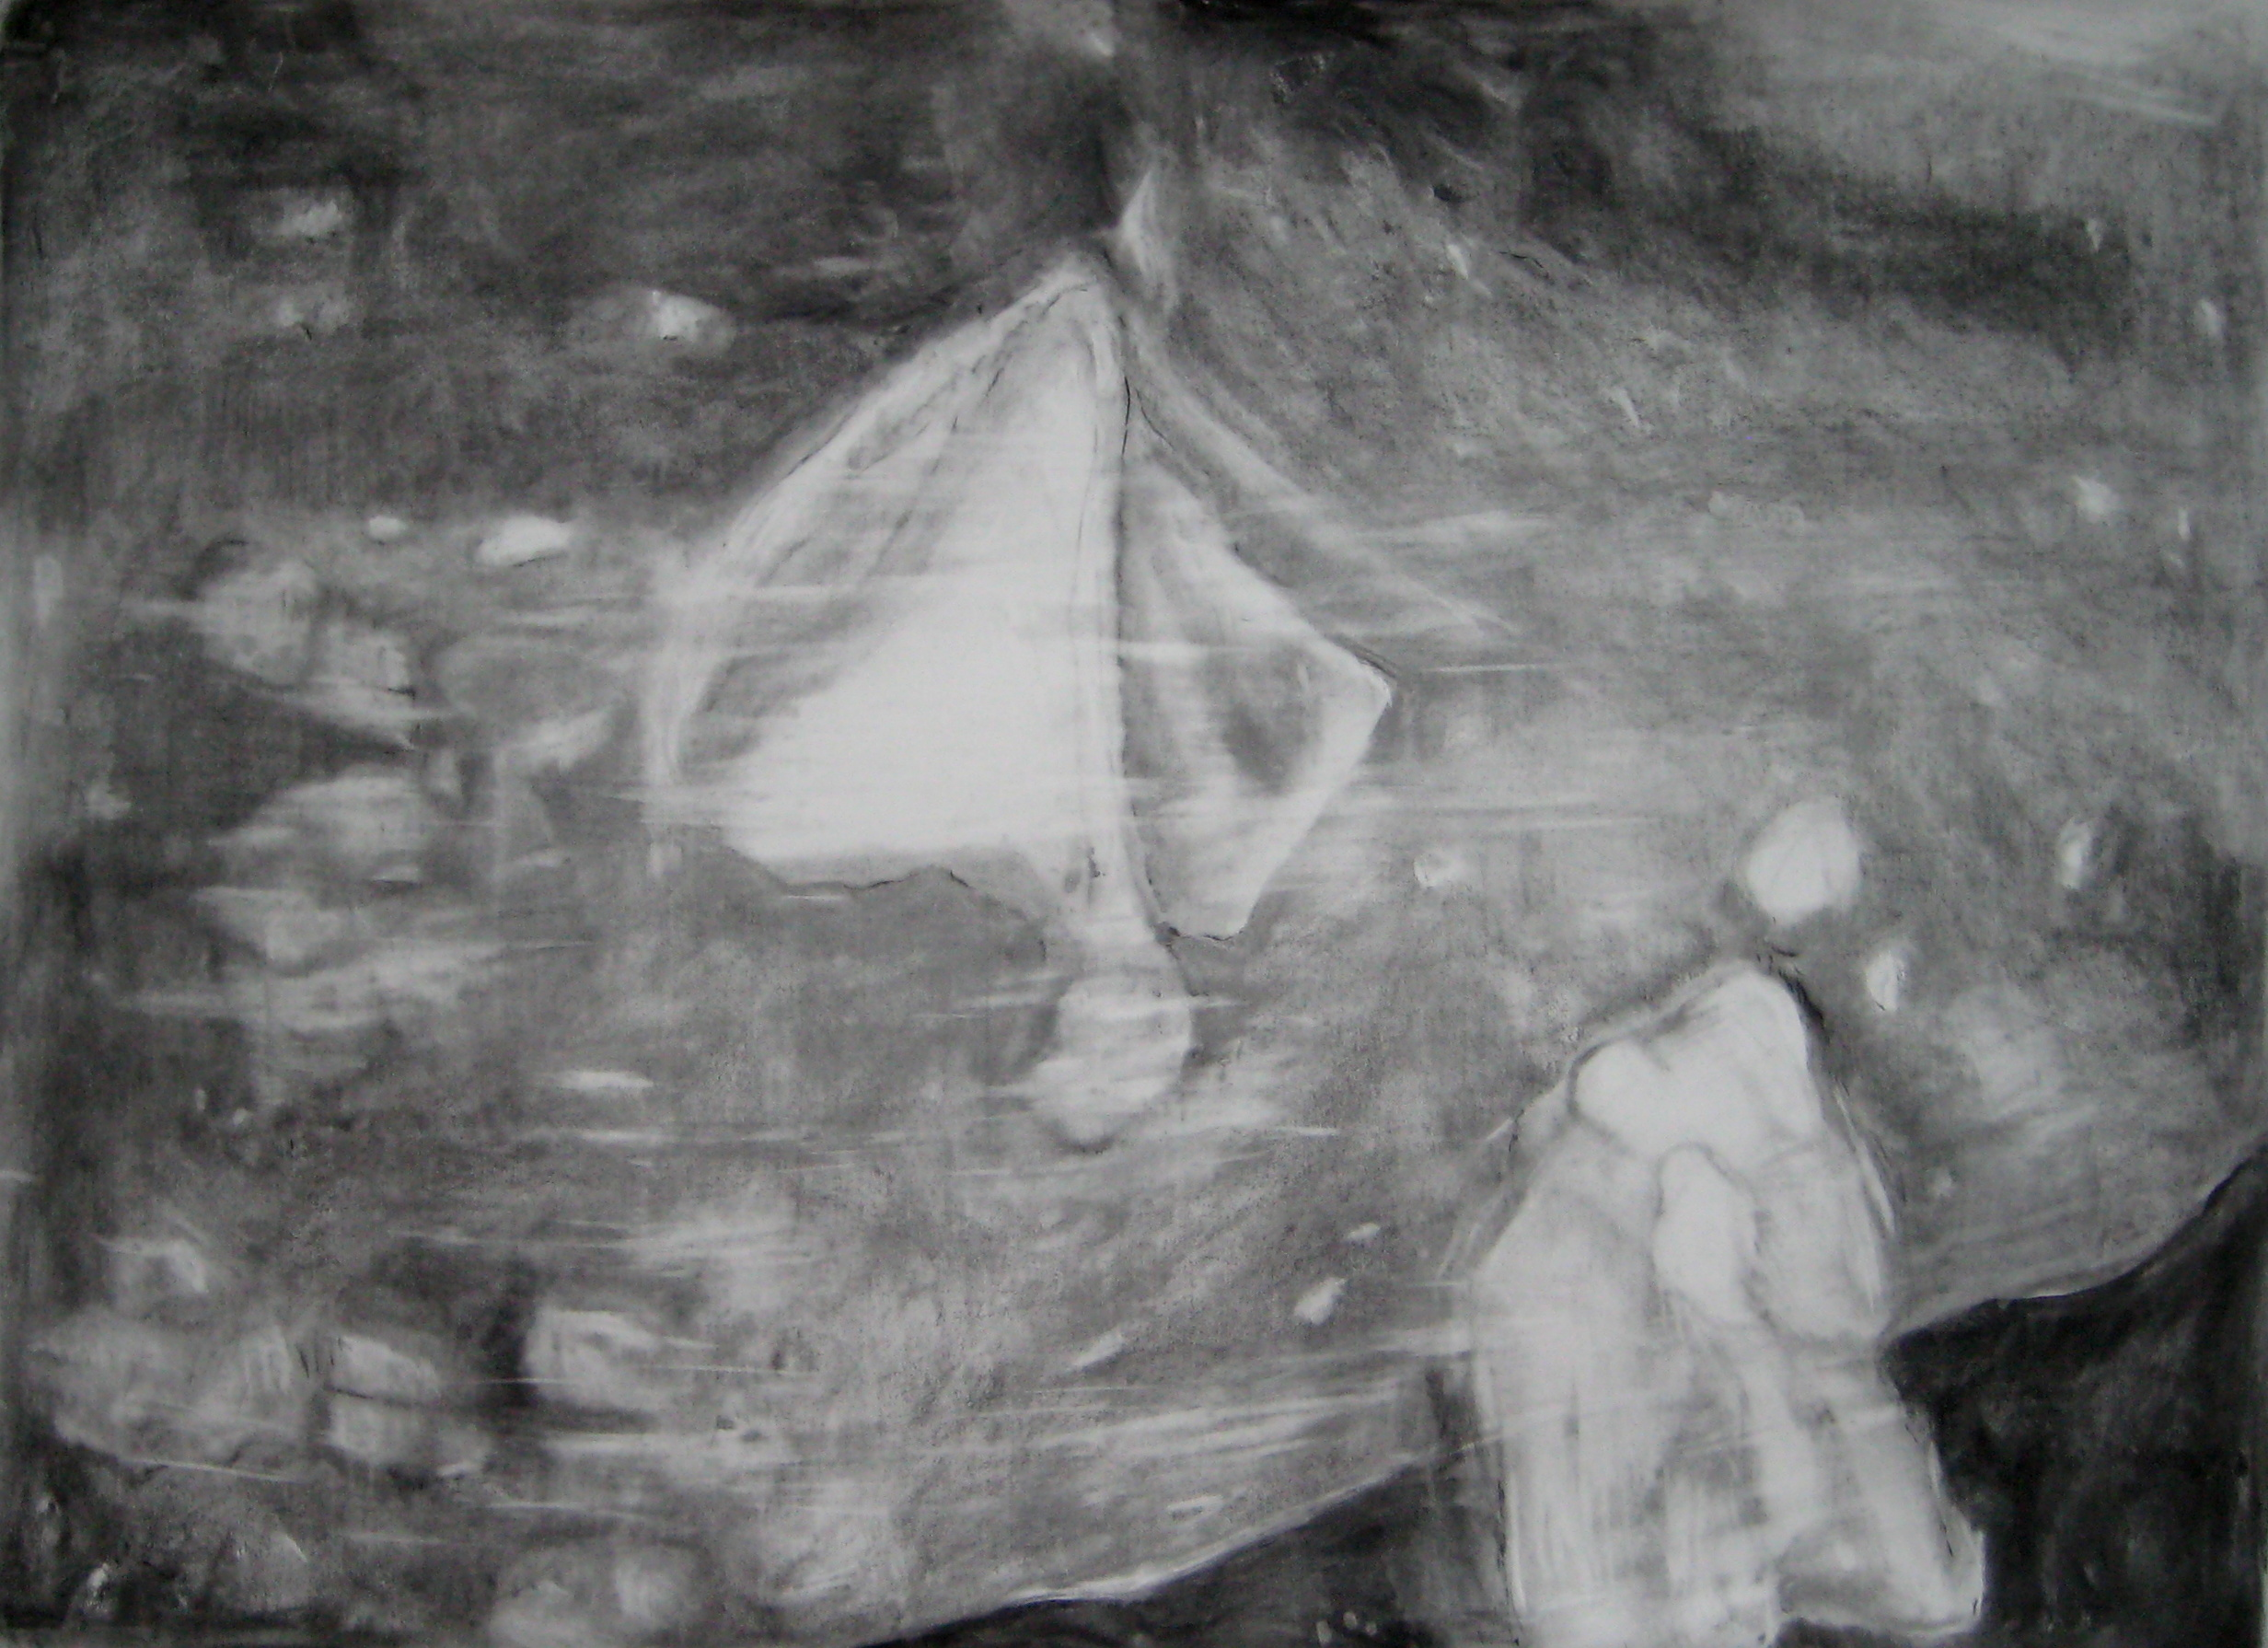 carita-savolainen-airscape-on-water( baltic) pencil-and-charcoal-on-paperveil-150cm-x-110cm-2012